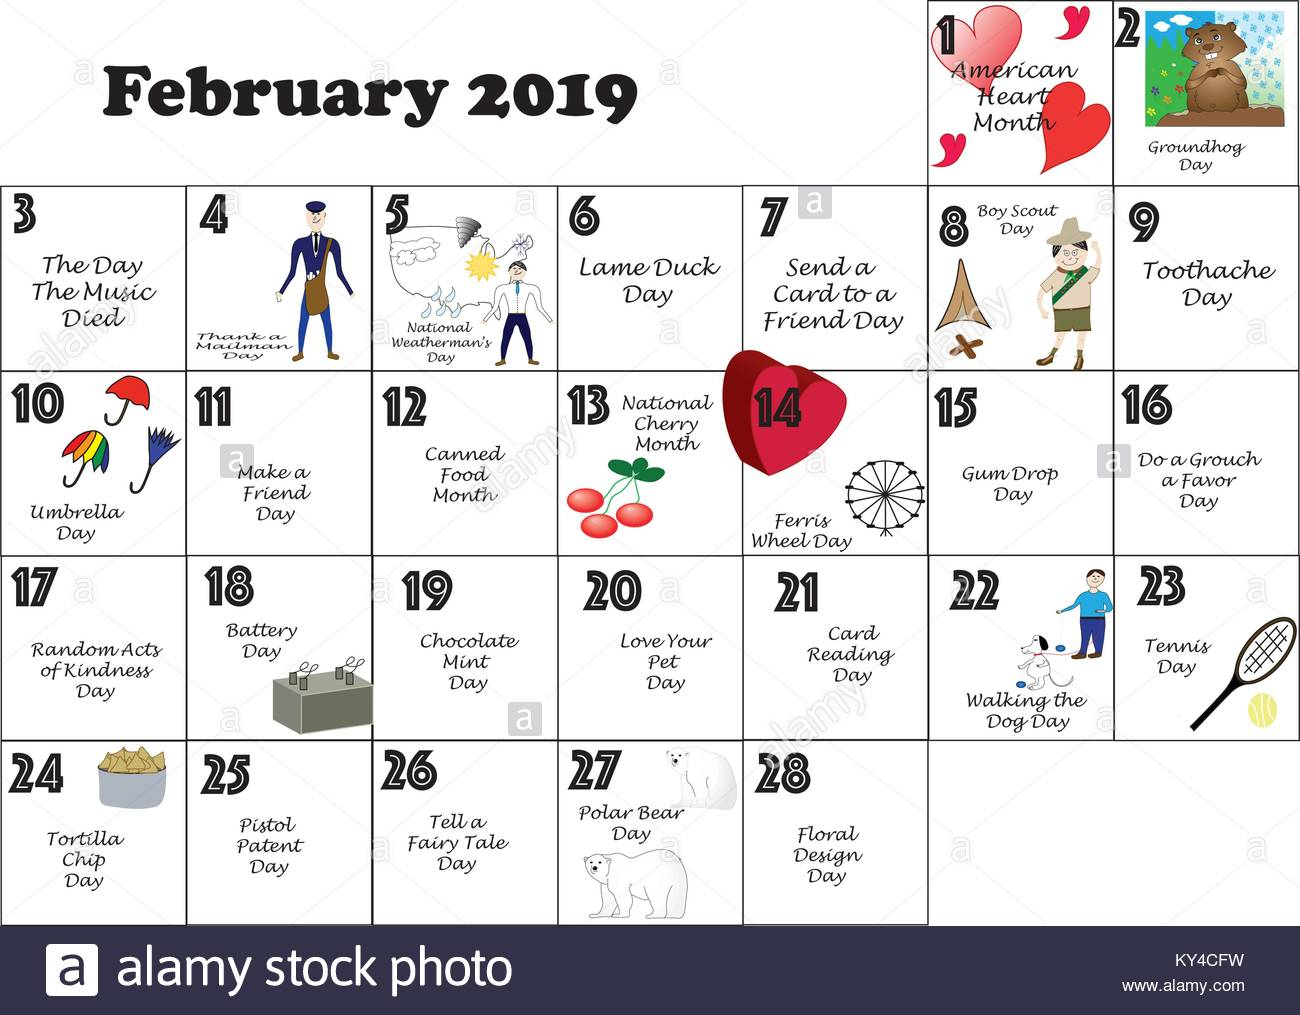 Calendar Celebrations 2019 February 2019 calendar illustrated and annotated with daily Quirky